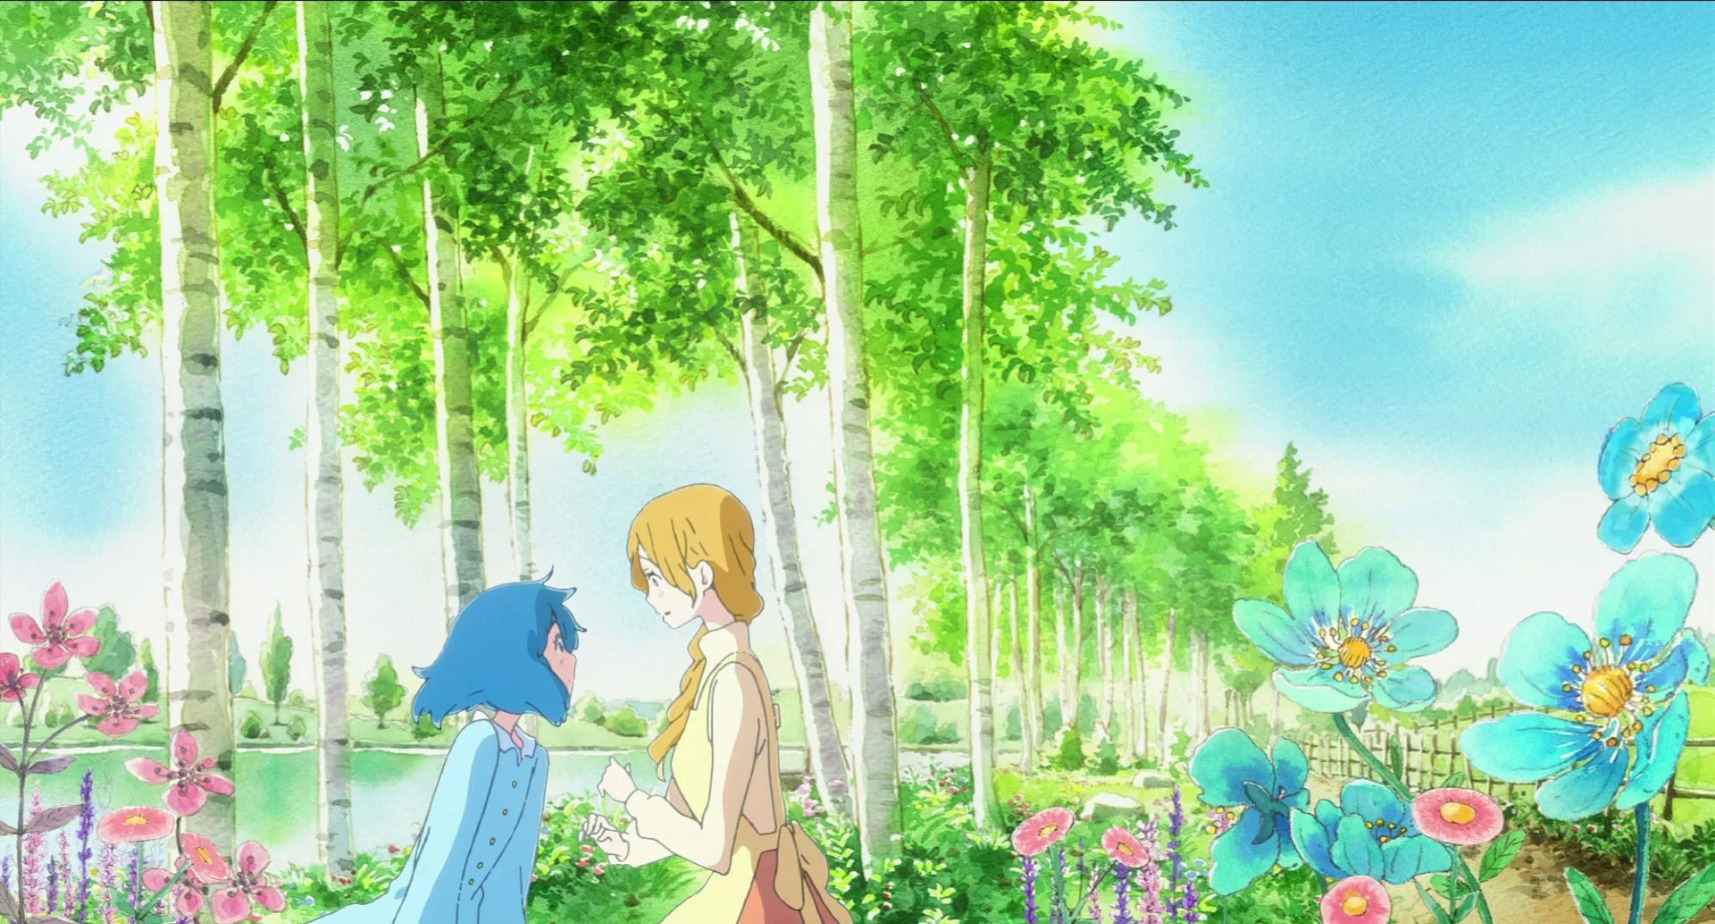 Liz, a blonde girl with a long braid, talking to the blue bird in the form of a blue girl by a row of trees painted with watercolors. Blue flowers bloom in the foreground.